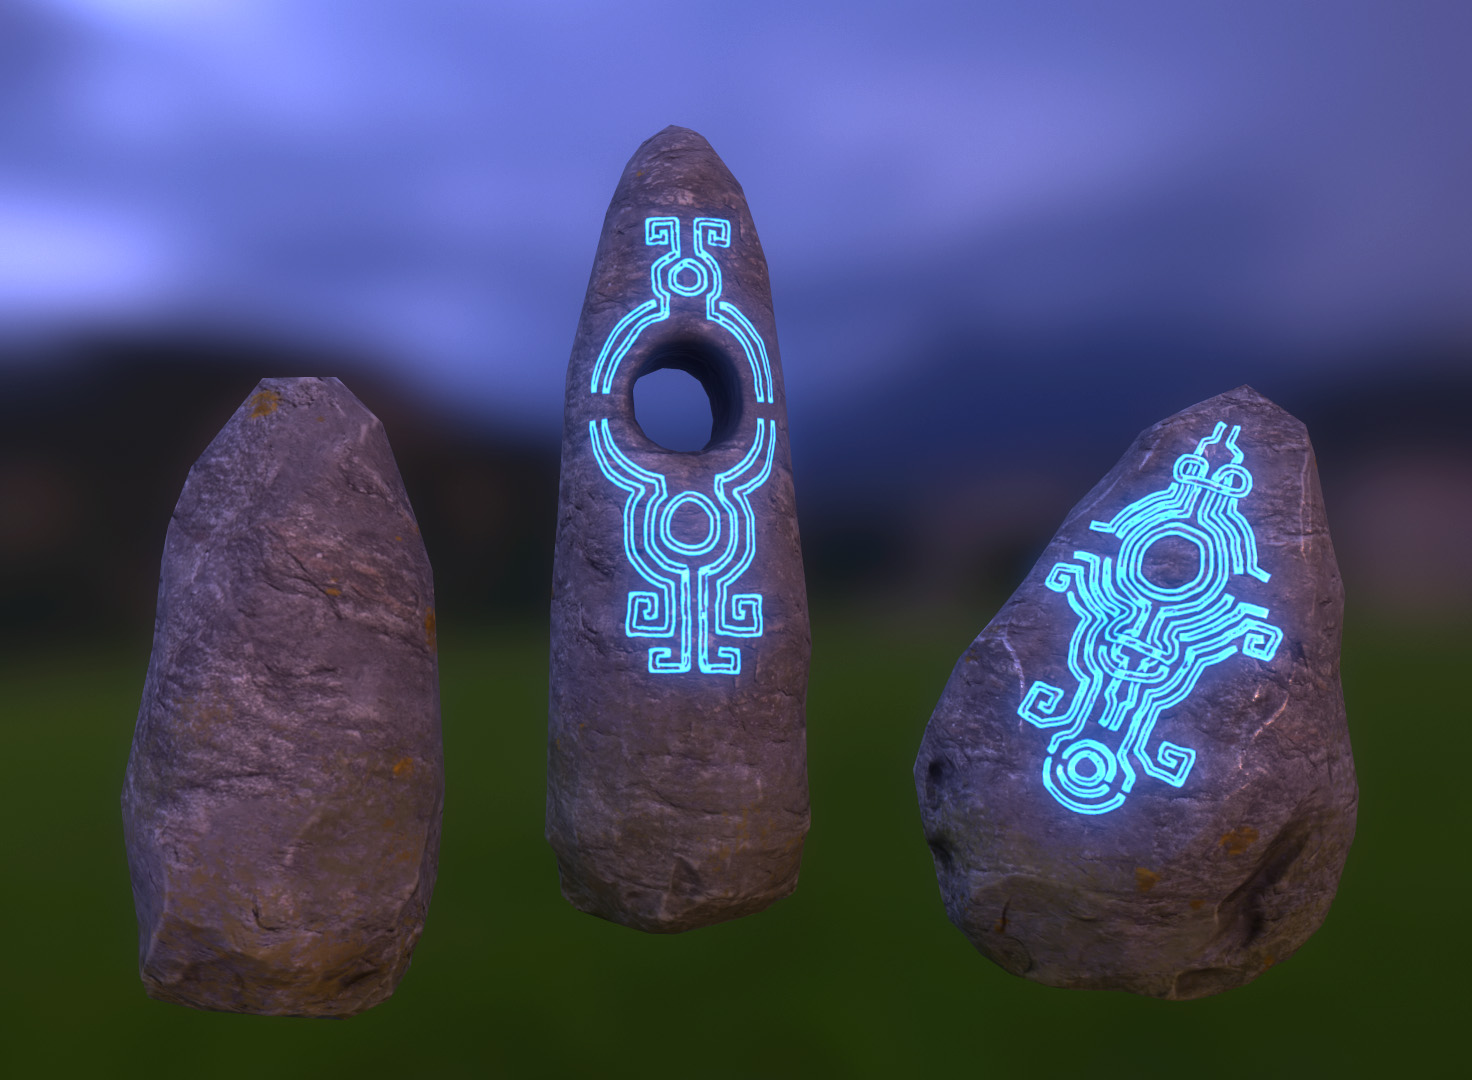 Rune stone environment props. Models created in Maya and Zbrush. Texturing with Xnormal and Photoshop.